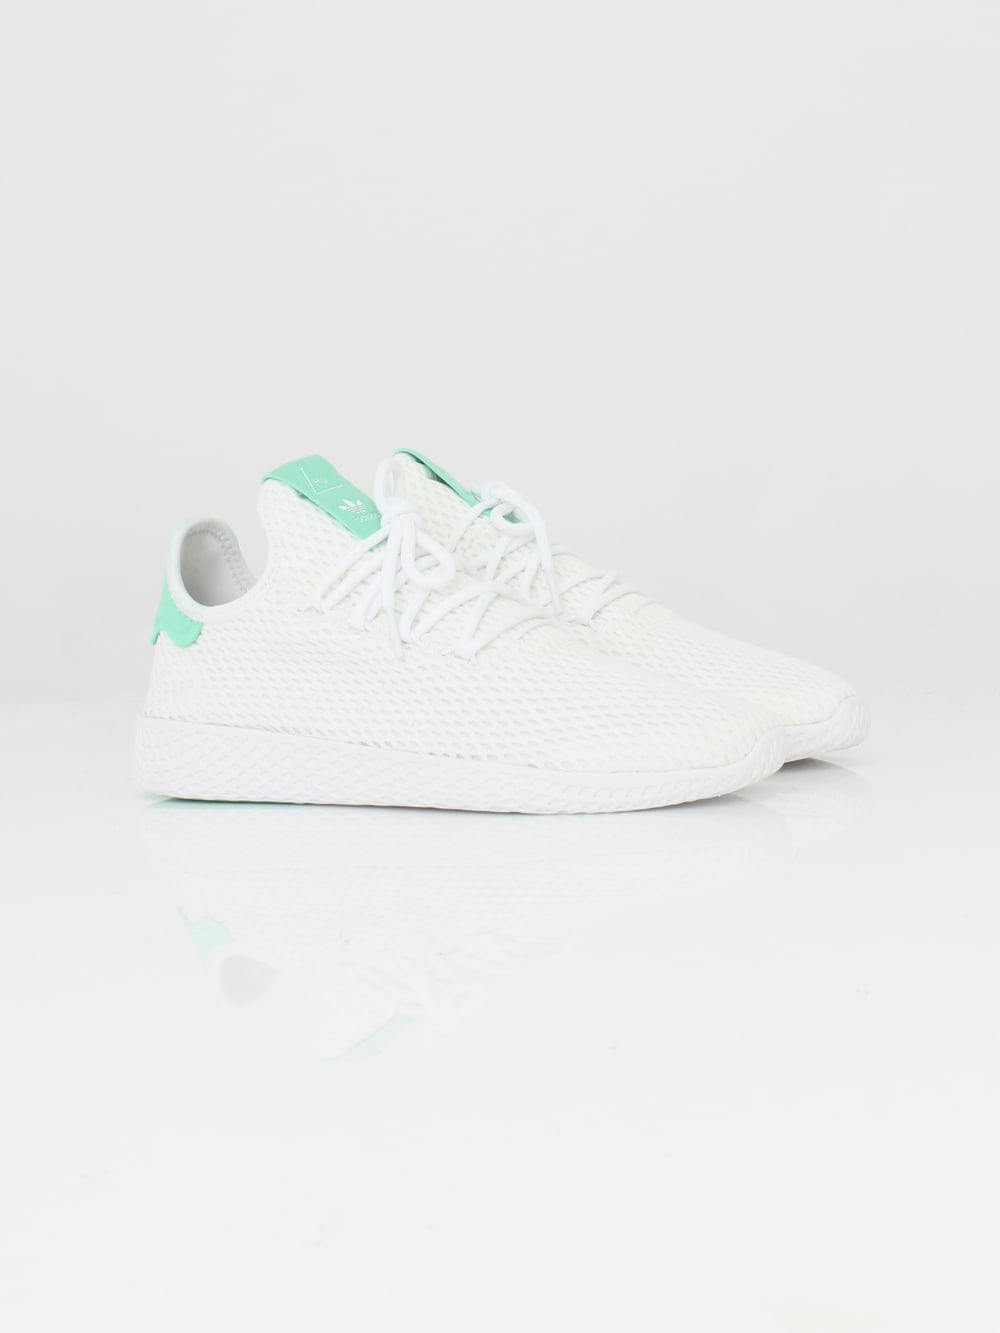 5c3e1f21c5ae8 adidas X Pharrell Williams Tennis Hu Trainer in Green - Northern Threads